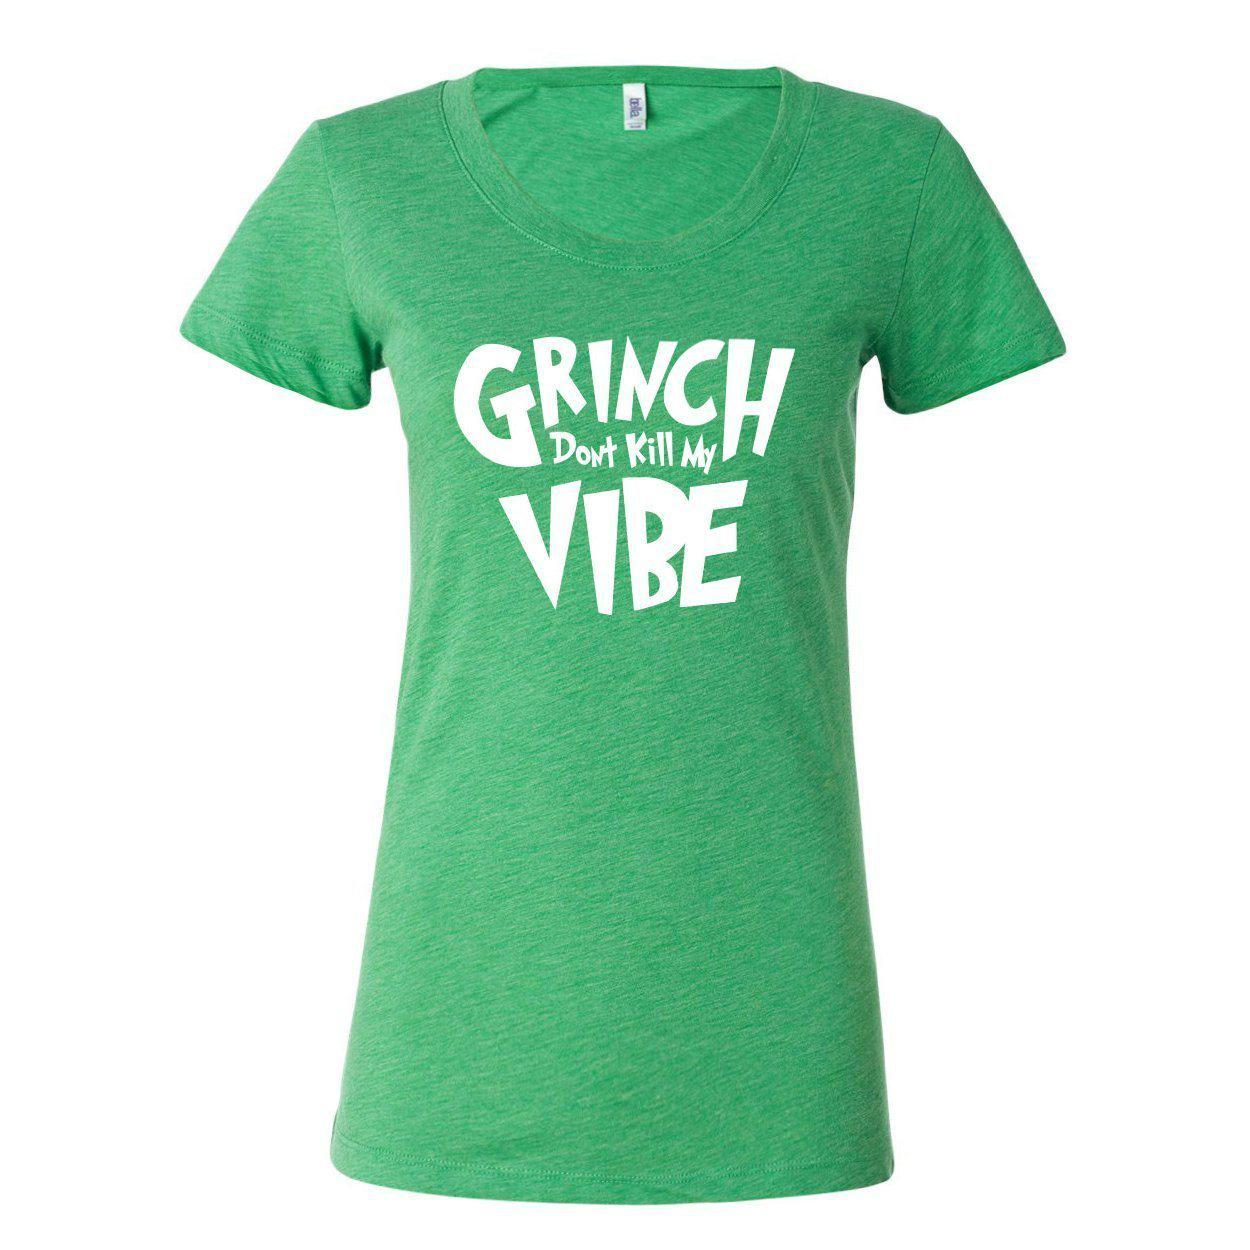 Grinch Don't Kill My Vibe Women's T-Shirt-Apparel-Beardaments-Small-Beardaments Beard Ornaments Glitter